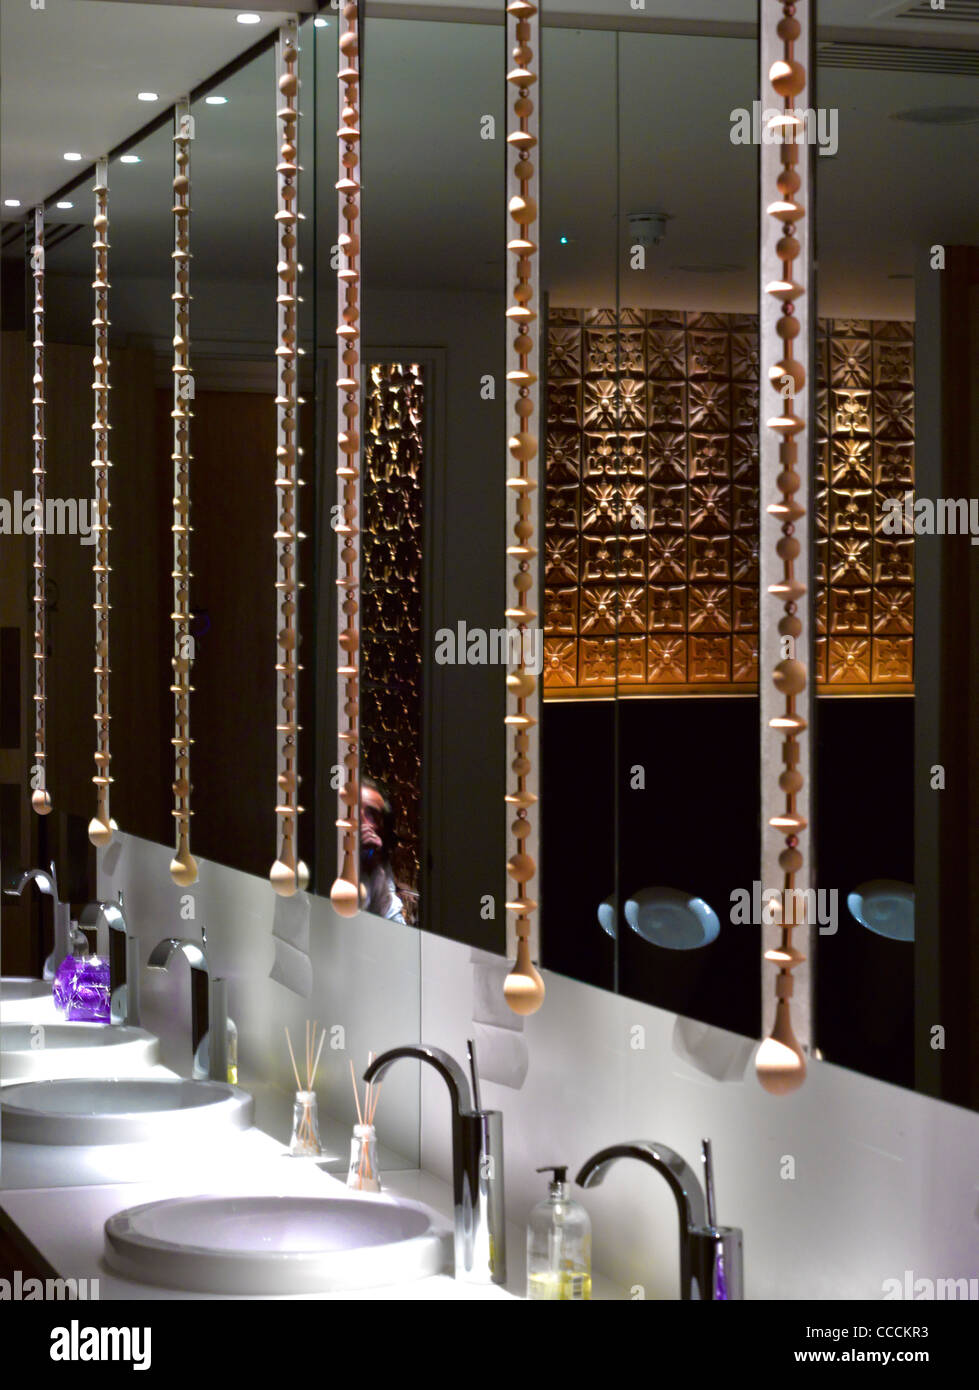 Aqua Restaraunt, London, Glamorous, 2011-toilet - Stock Image